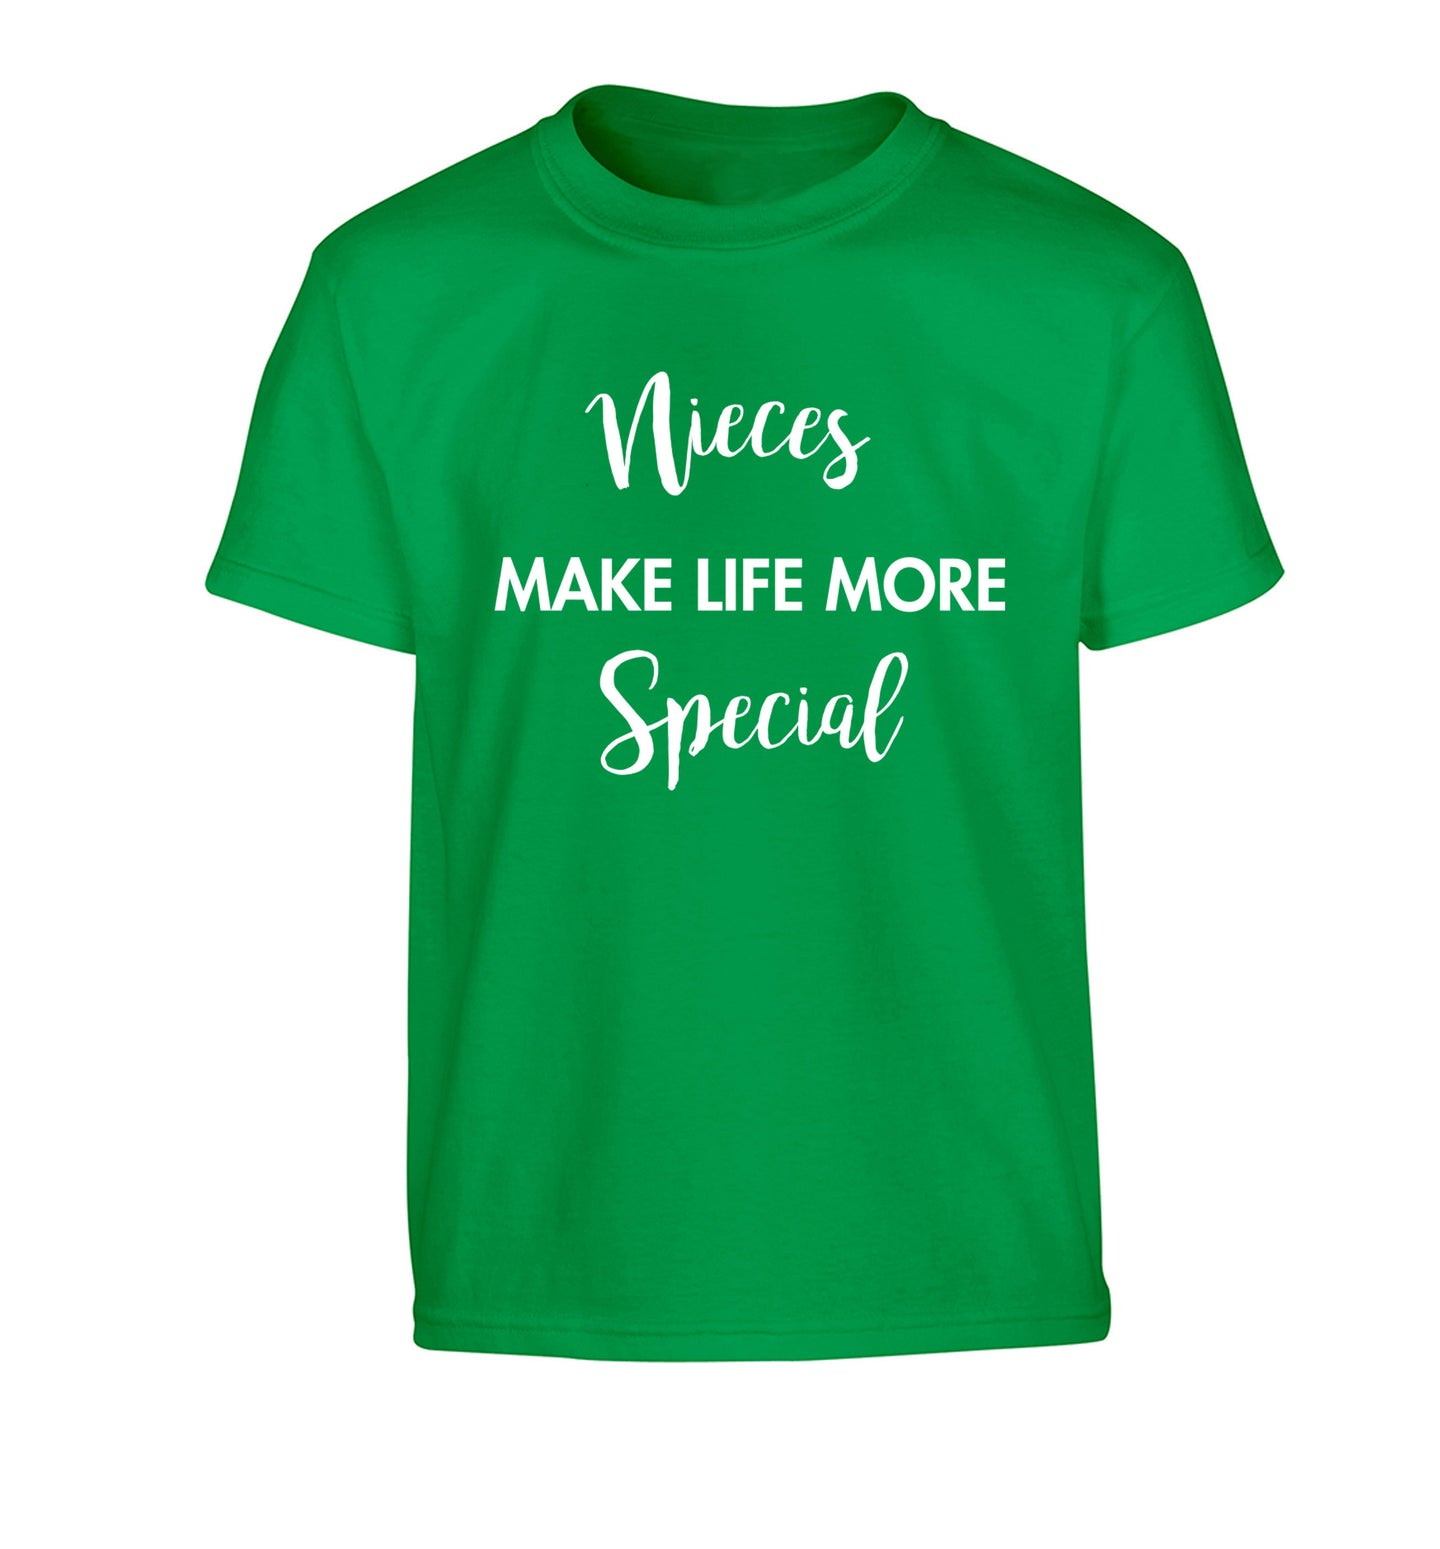 Nieces make life more special Children's green Tshirt 12-14 Years